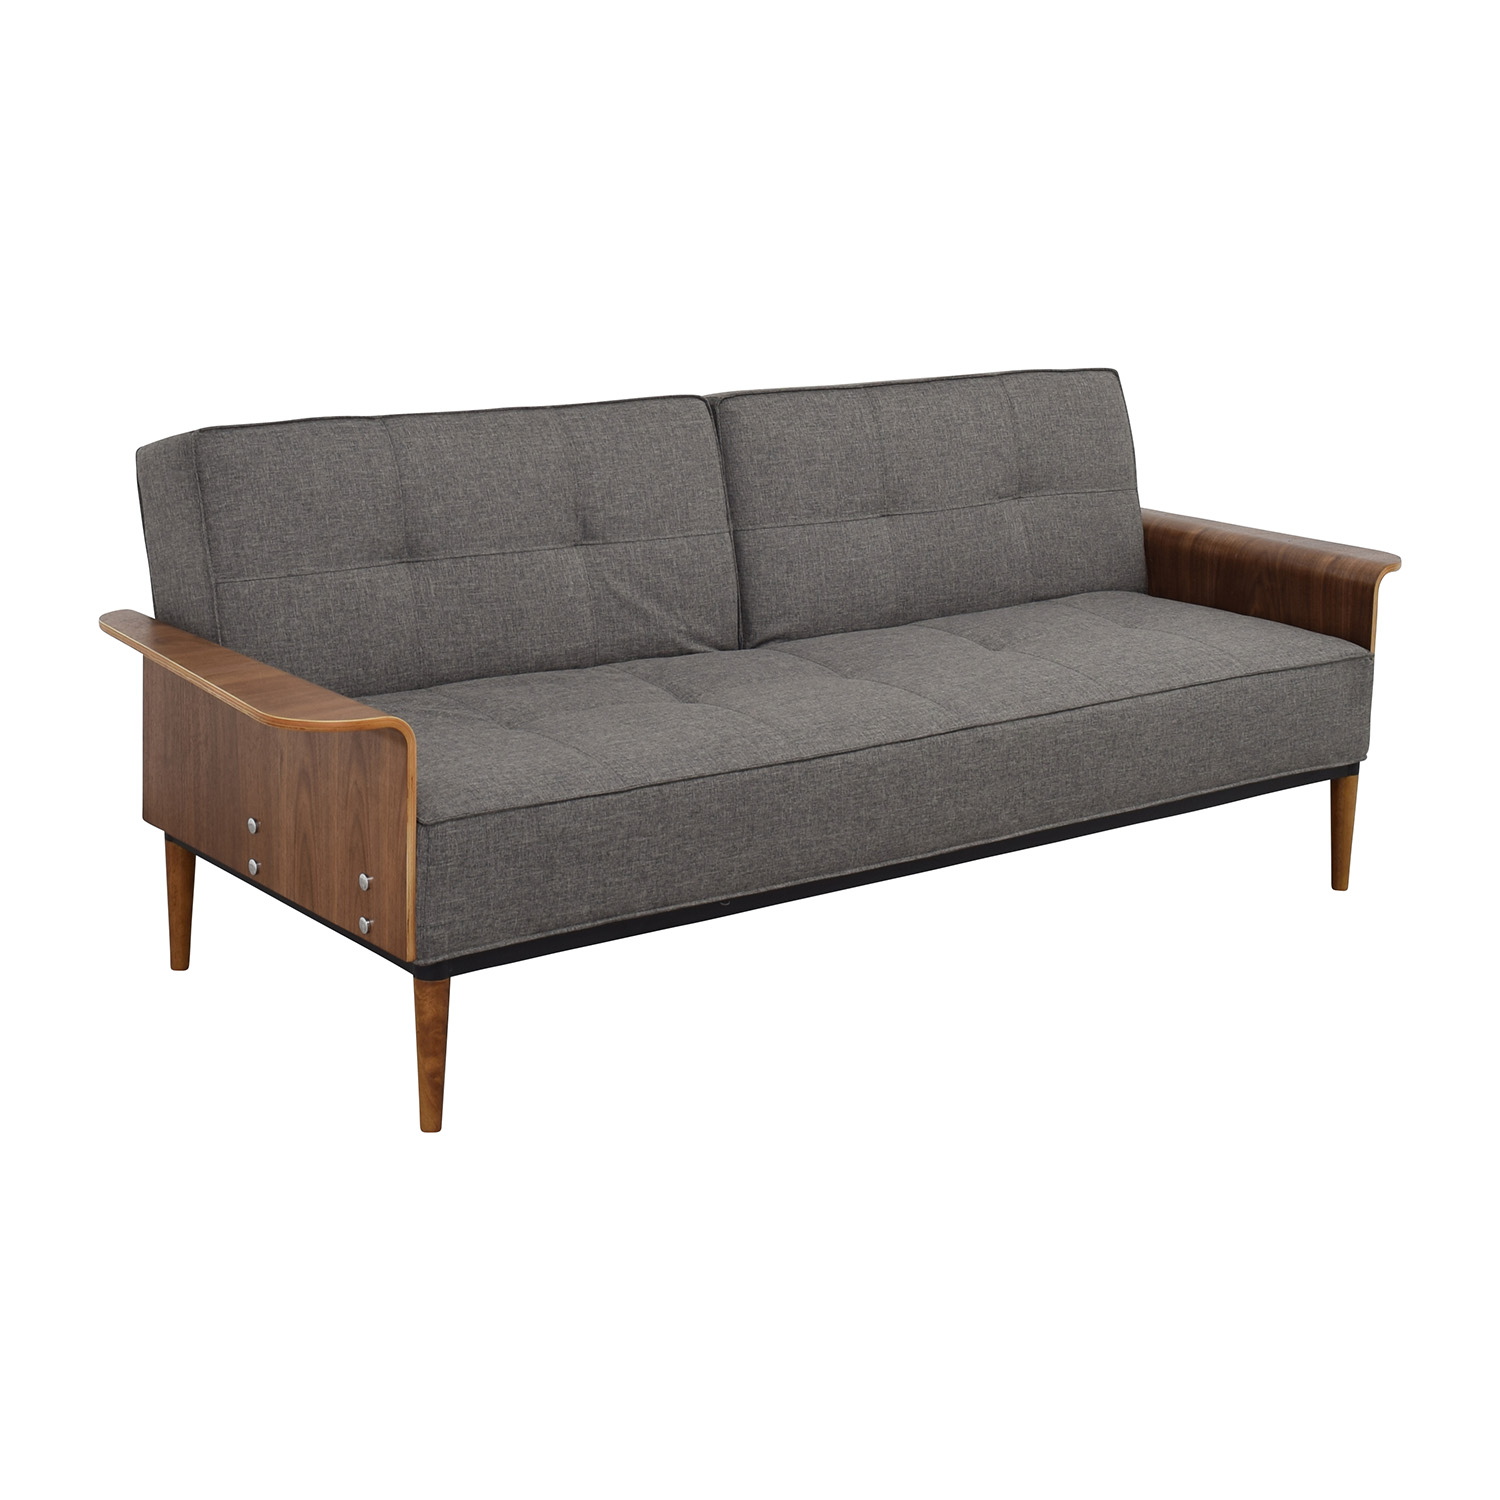 5 in 1 sofa bed low price 28 images air sofa beds 4299 5 in 1